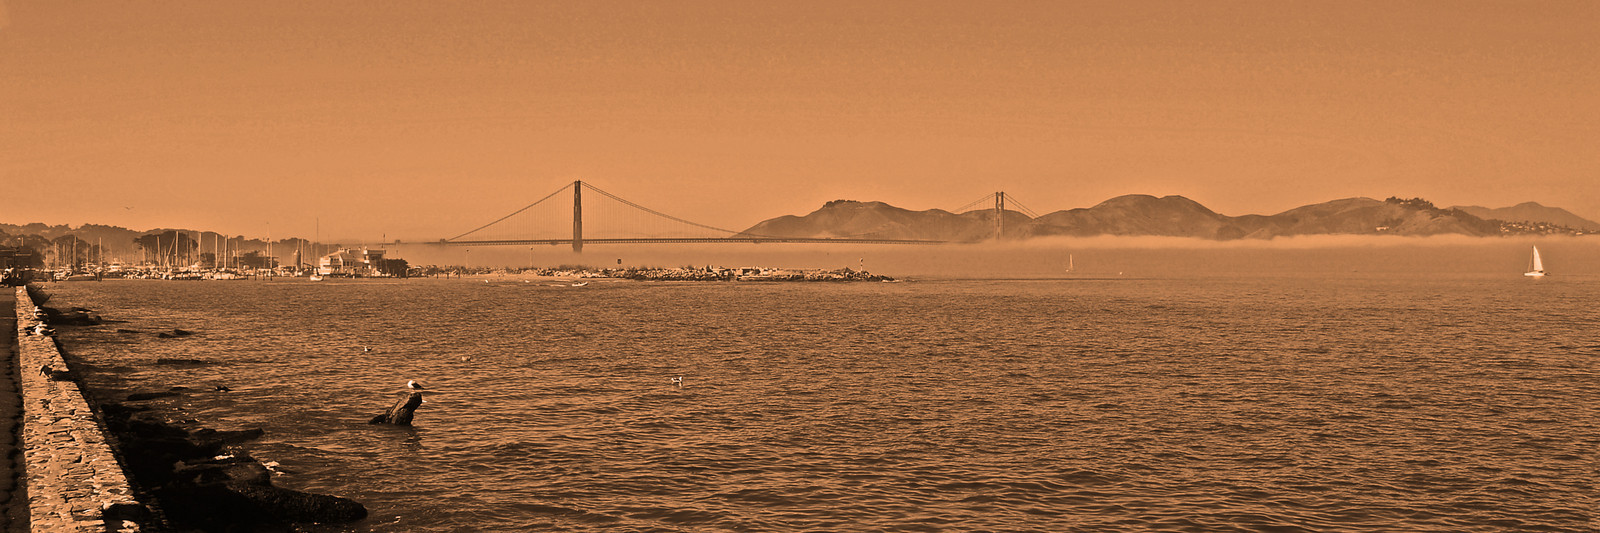 Northern San Francisco Bay, Golden Gate Bridge with the Marin Headlands State Park in the background